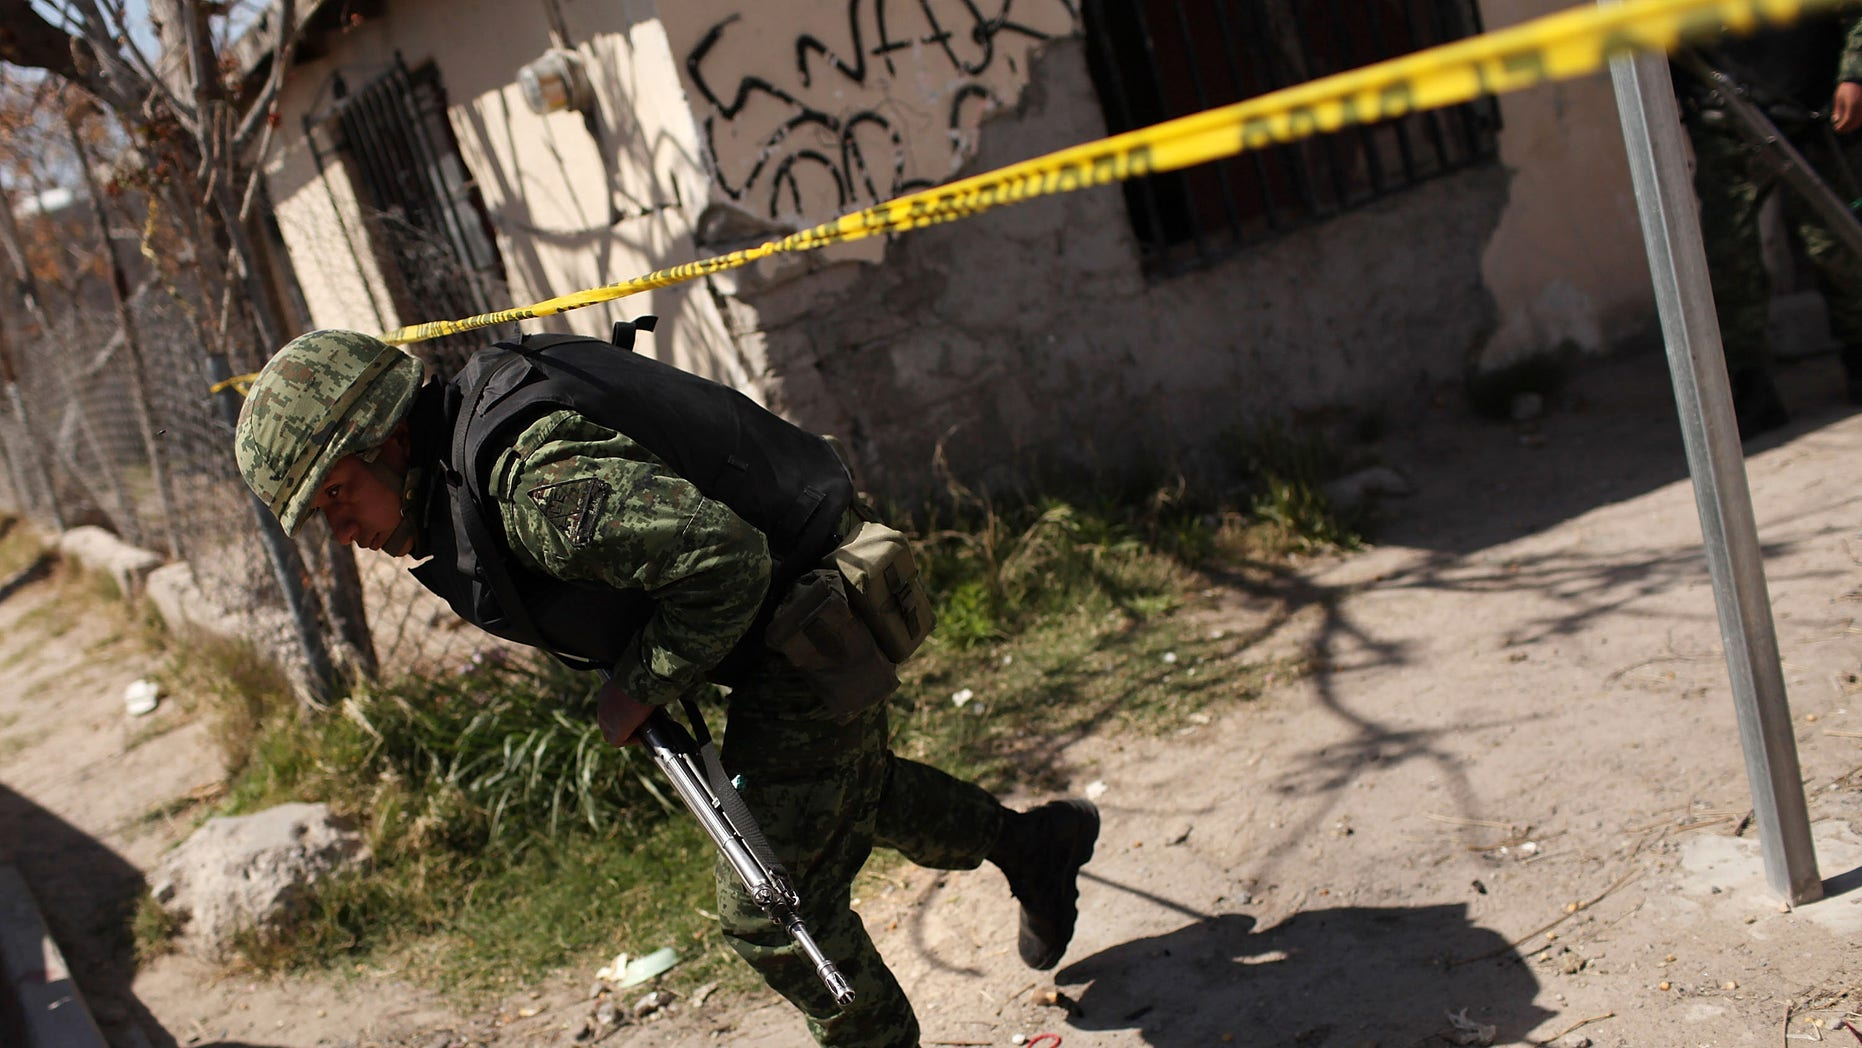 JUAREZ, MEXICO - MARCH 24:  Members of the Mexican military police keep guard at the scene of the murder of two women aged 17 and 21 March 24, 2010 in Juarez, Mexico. Secretary of State Hillary Rodham Clinton, Defense Secretary Robert Gates, and Homeland Security Secretary Janet Napolitano all visited Mexico yesterday for discussions centered on Mexico's endemic drug-related violence. The border city of Juarez, Mexico has been racked by violent drug-related crime recently and has quickly become one of the most dangerous cities in the world in which to live. As drug cartels have been fighting over ever-lucrative drug corridors along the United States border, the murder rate in Juarez has risen to 173 slayings for every 100,000 residents. President Felipe Calderon's strategy of sending 7000 troops to Juarez has not mitigated the situation. With a population of 1.3 million, 2,600 people died in drug-related violence last year and 500 so far this year, including two Americans recently who worked for the U.S. Consulate and were killed as they returned from a child's party.  (Photo by Spencer Platt/Getty Images)